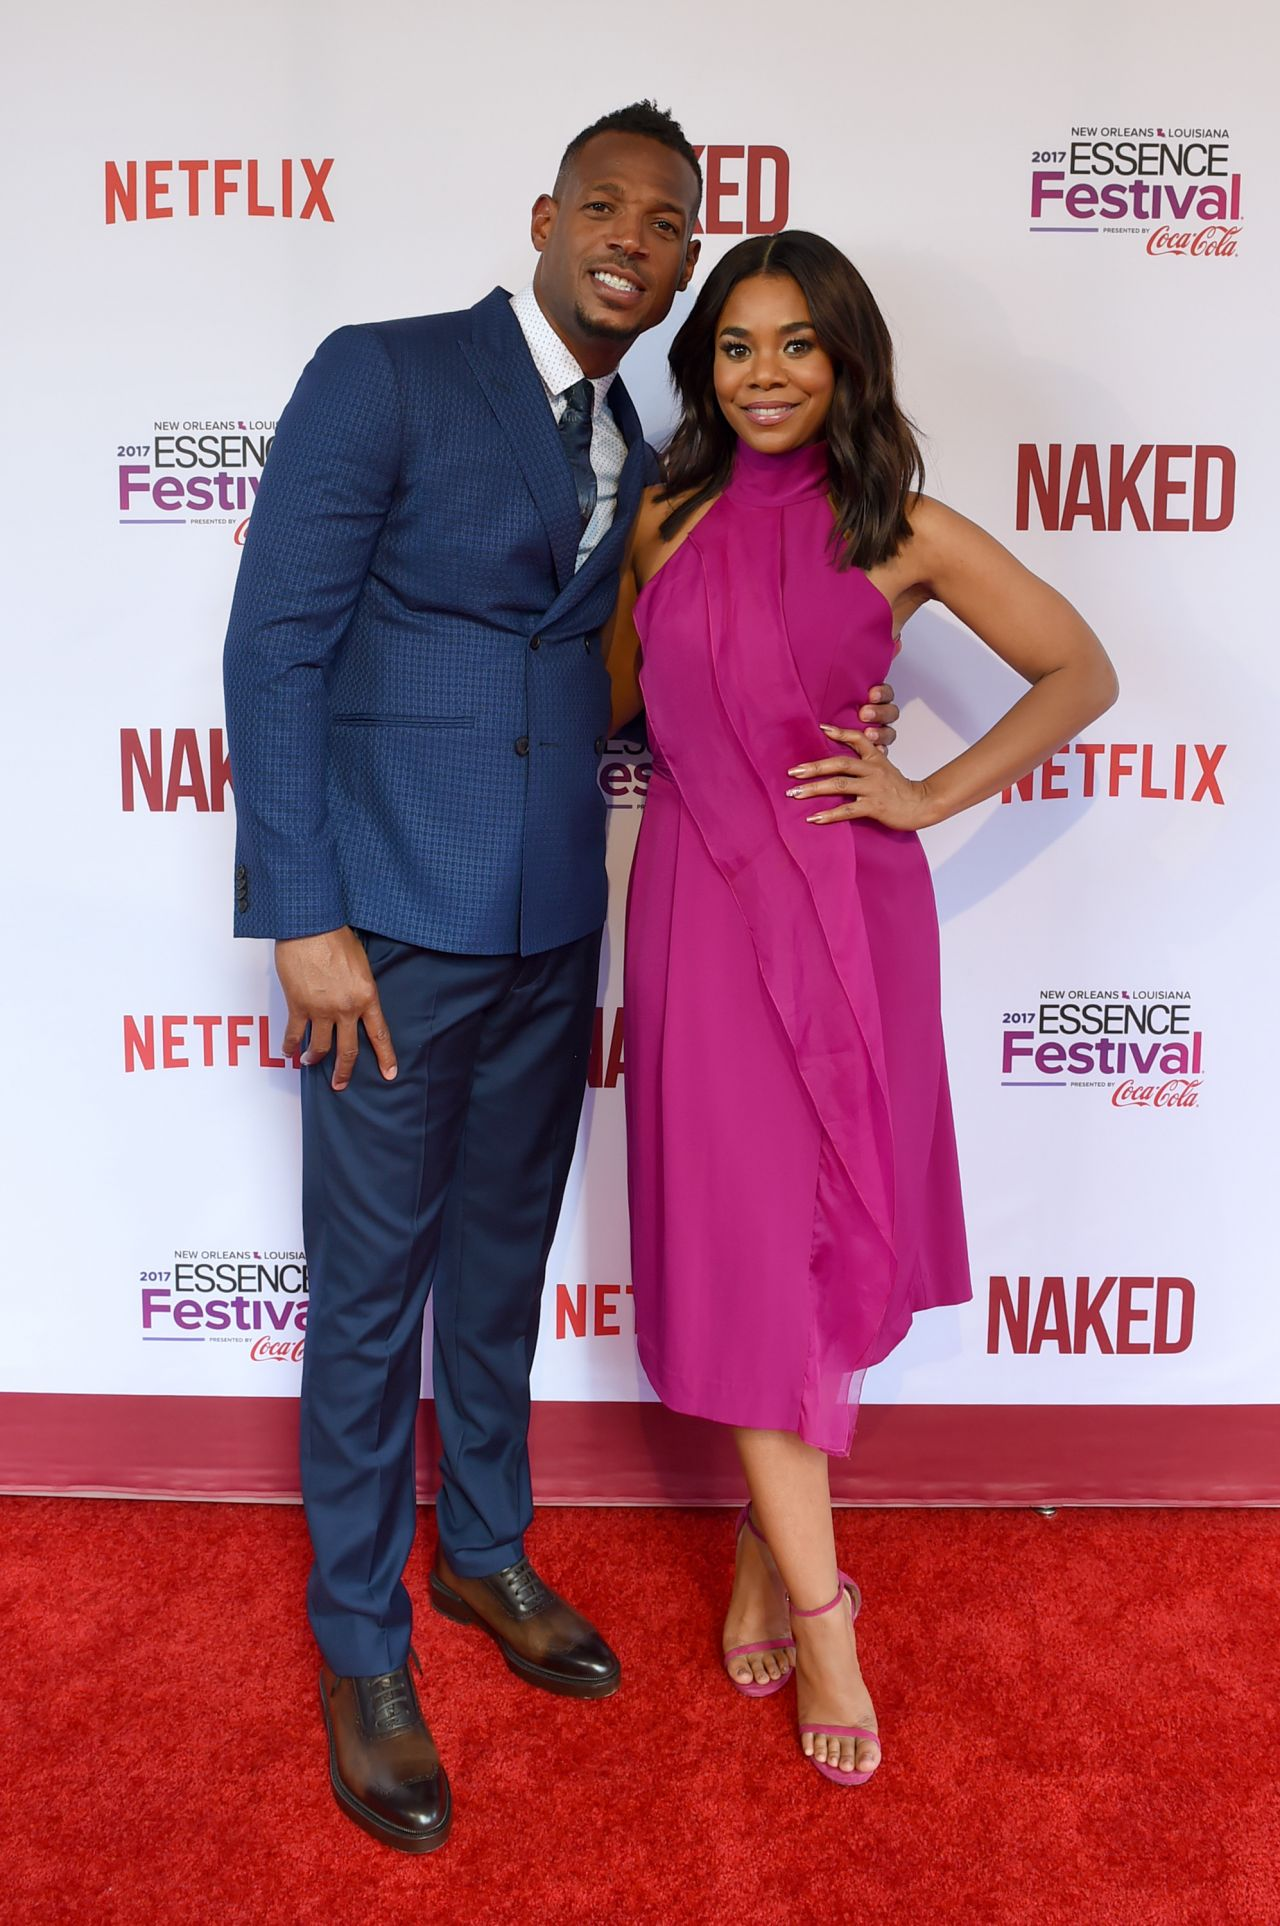 Regina Hall - Naked Premiere at The 2017 Essence